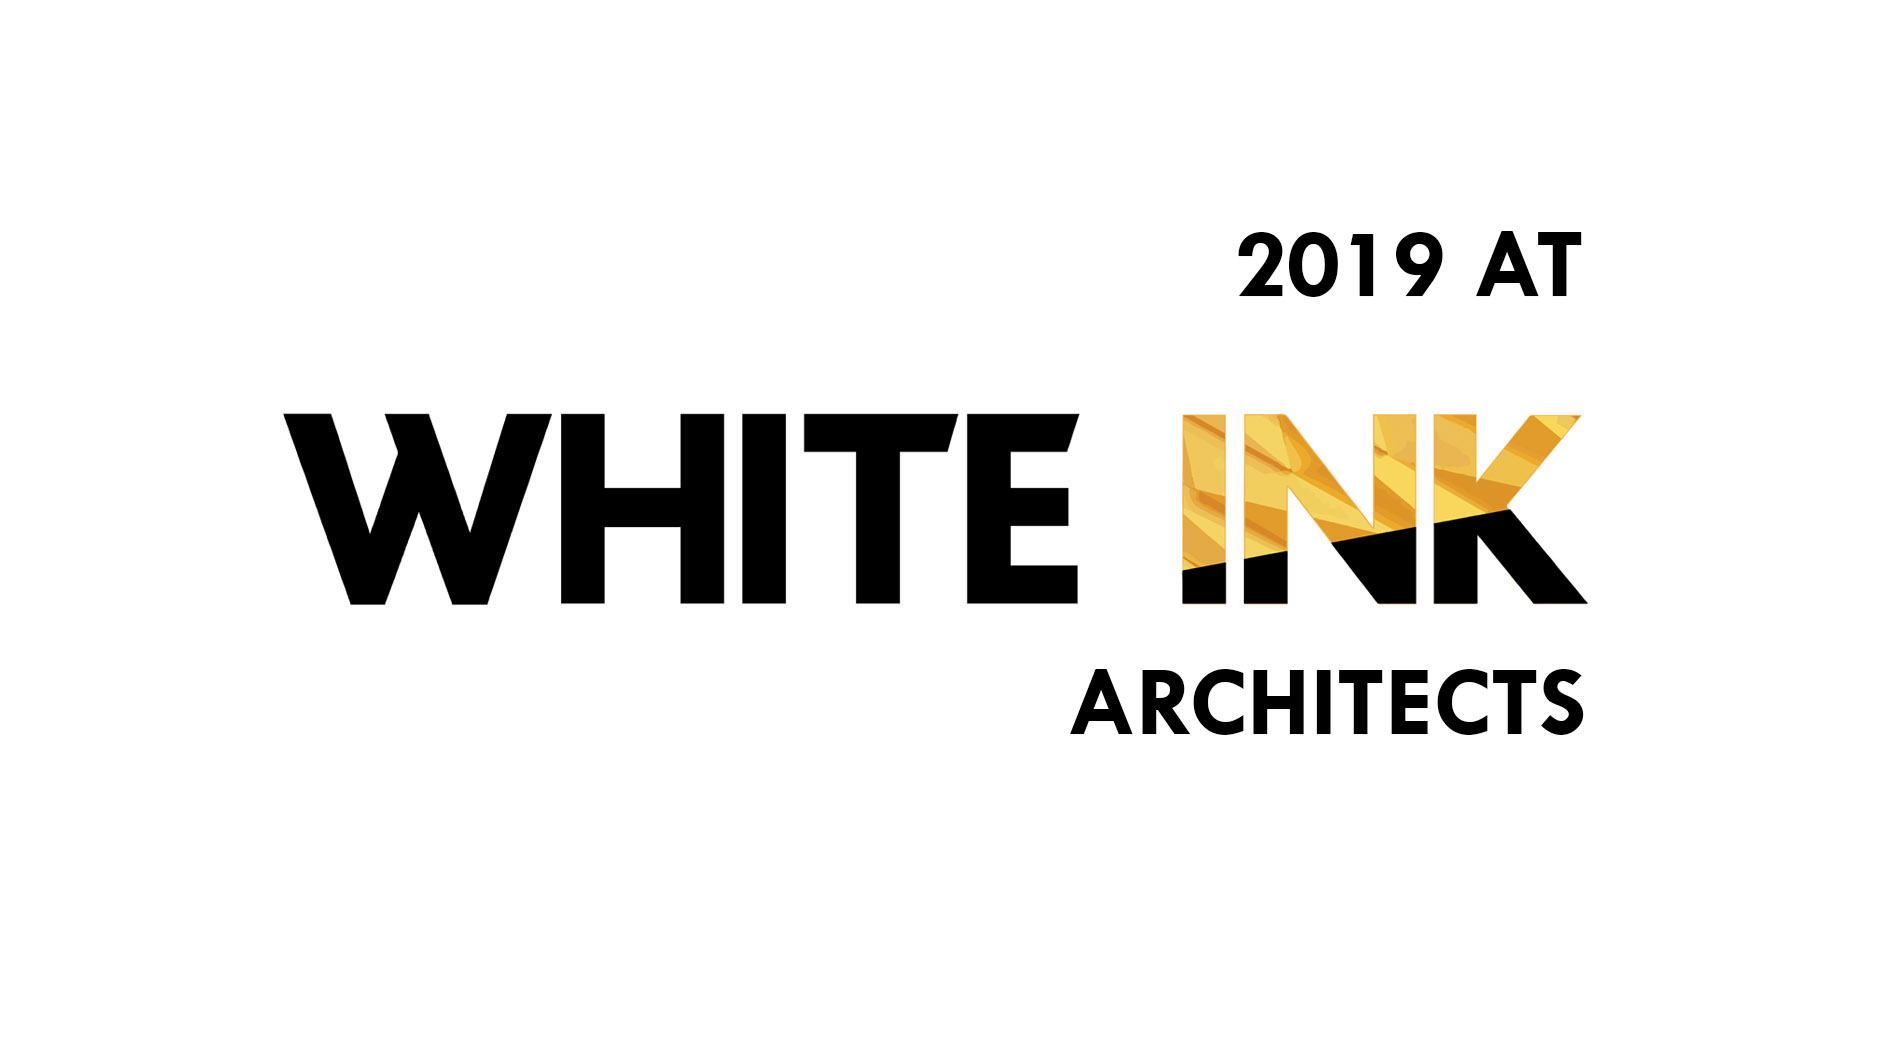 2019 at White Ink Architects